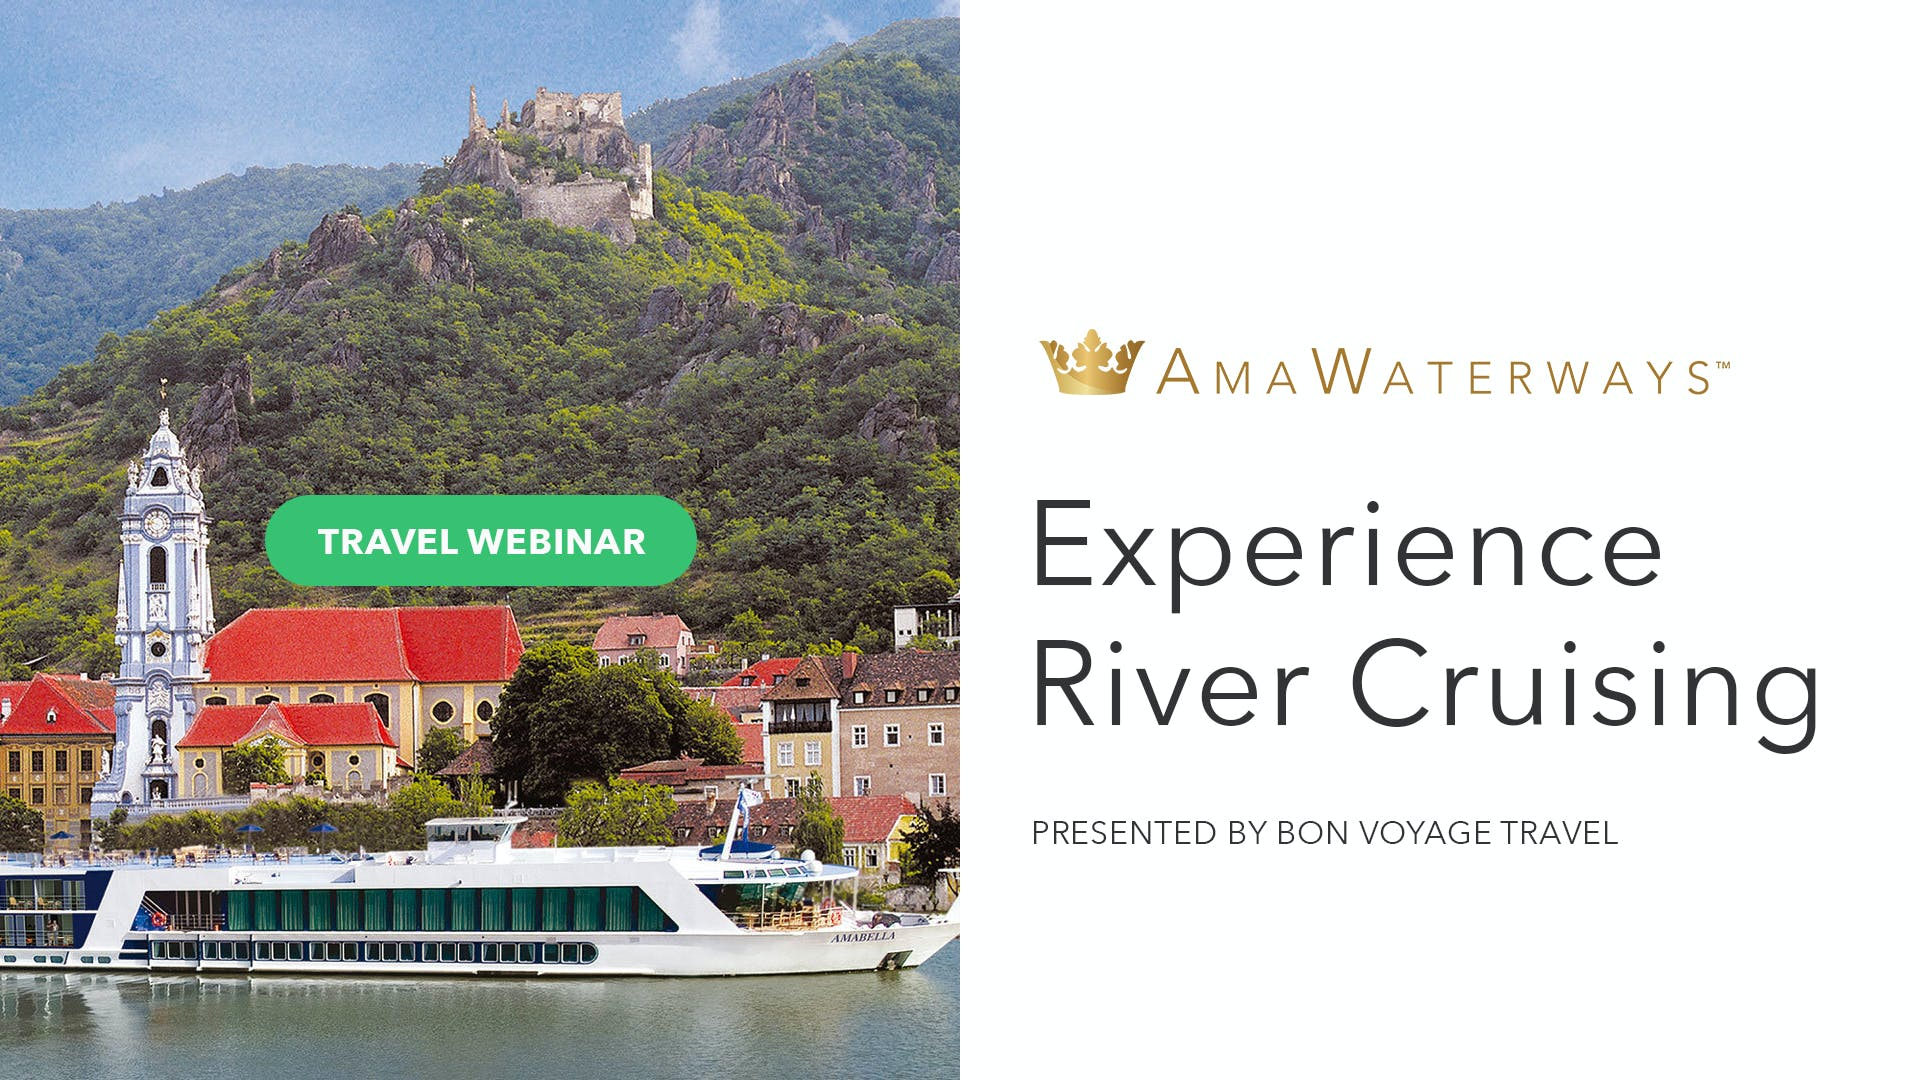 River Cruising With AmaWaterways